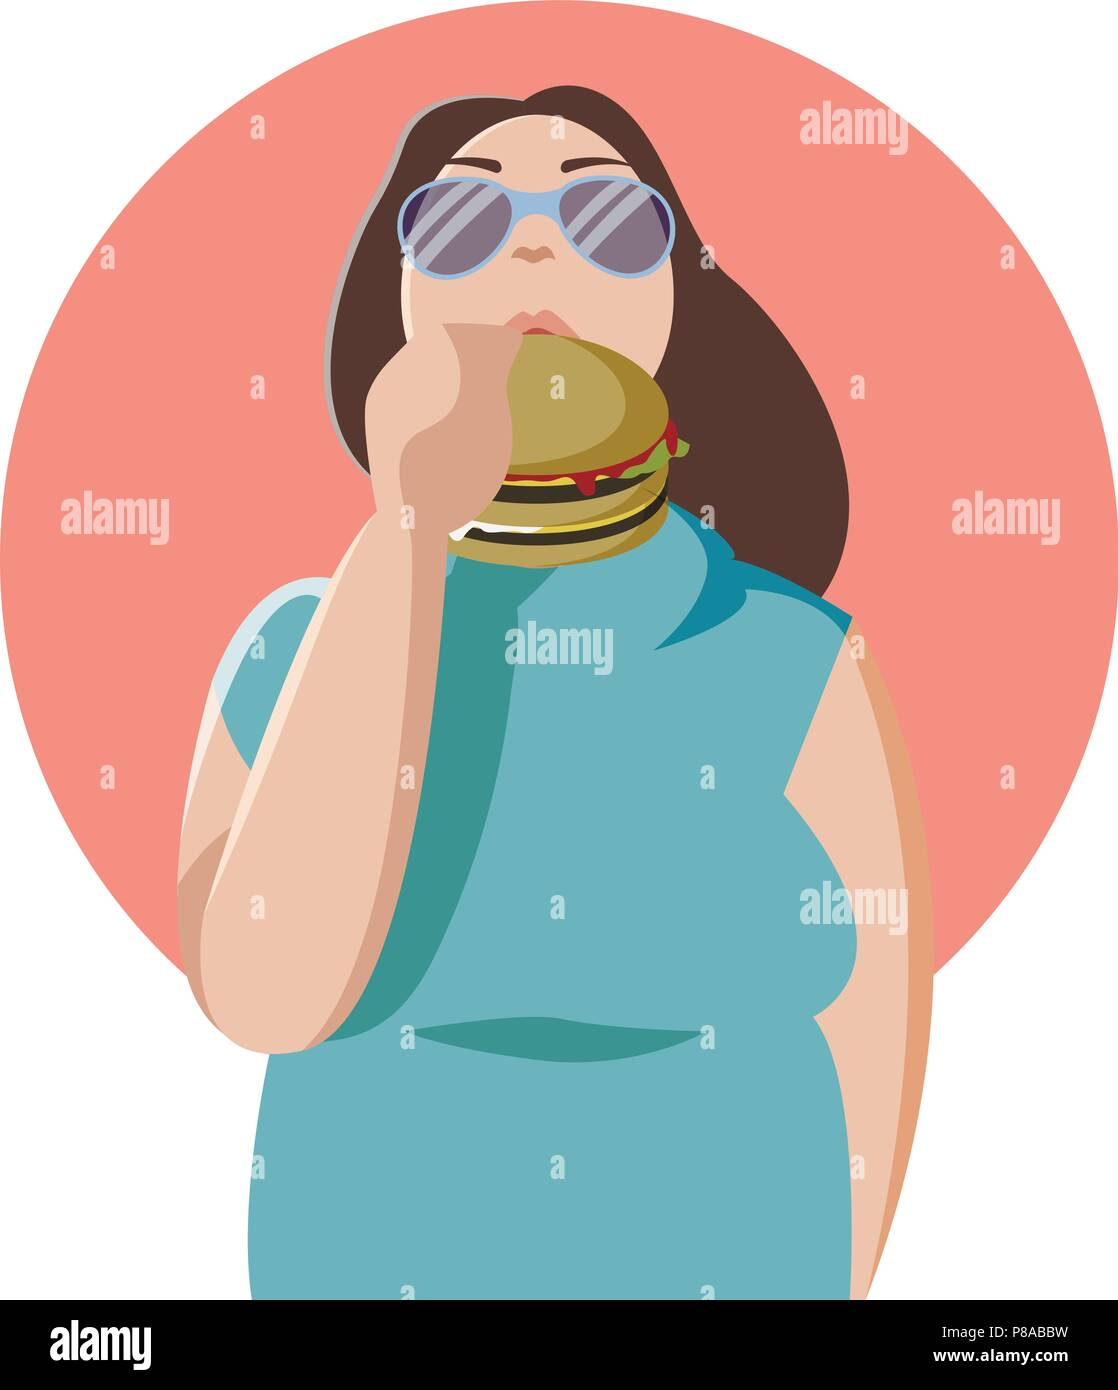 Happy fat woman eating a big tasty hamburger. Flat concept illustration of bad habits and people eating burgers and junk food isolated - Stock Vector